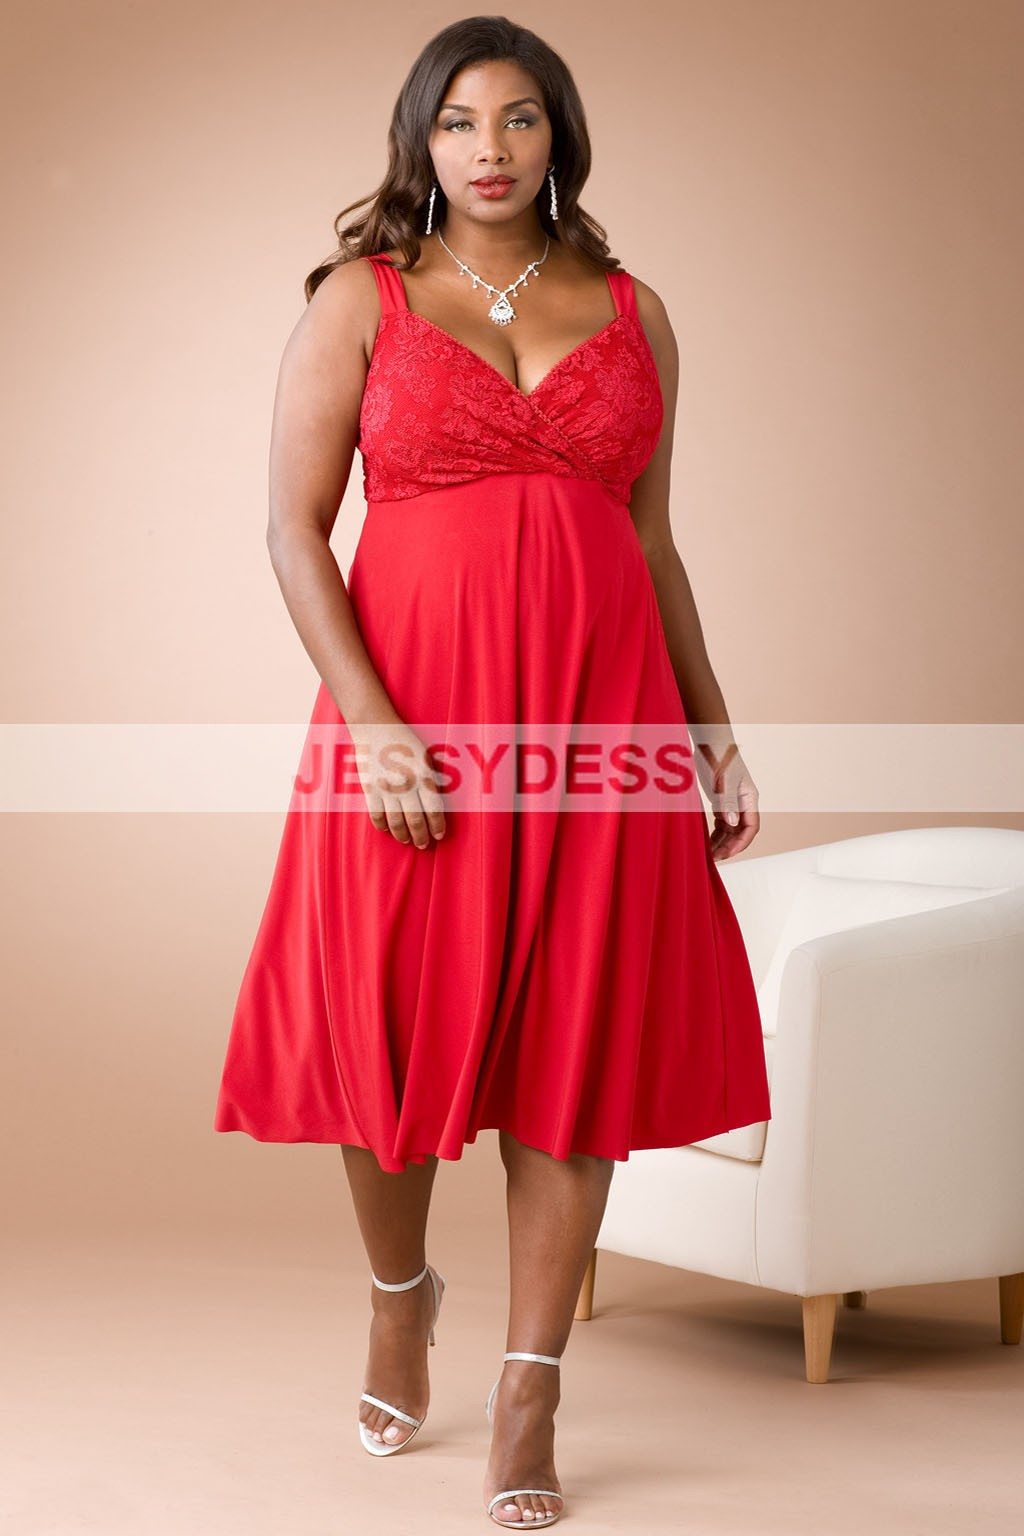 Plus Size Red Dress Uk 2014 2015 Fashion Trends 2016 2017